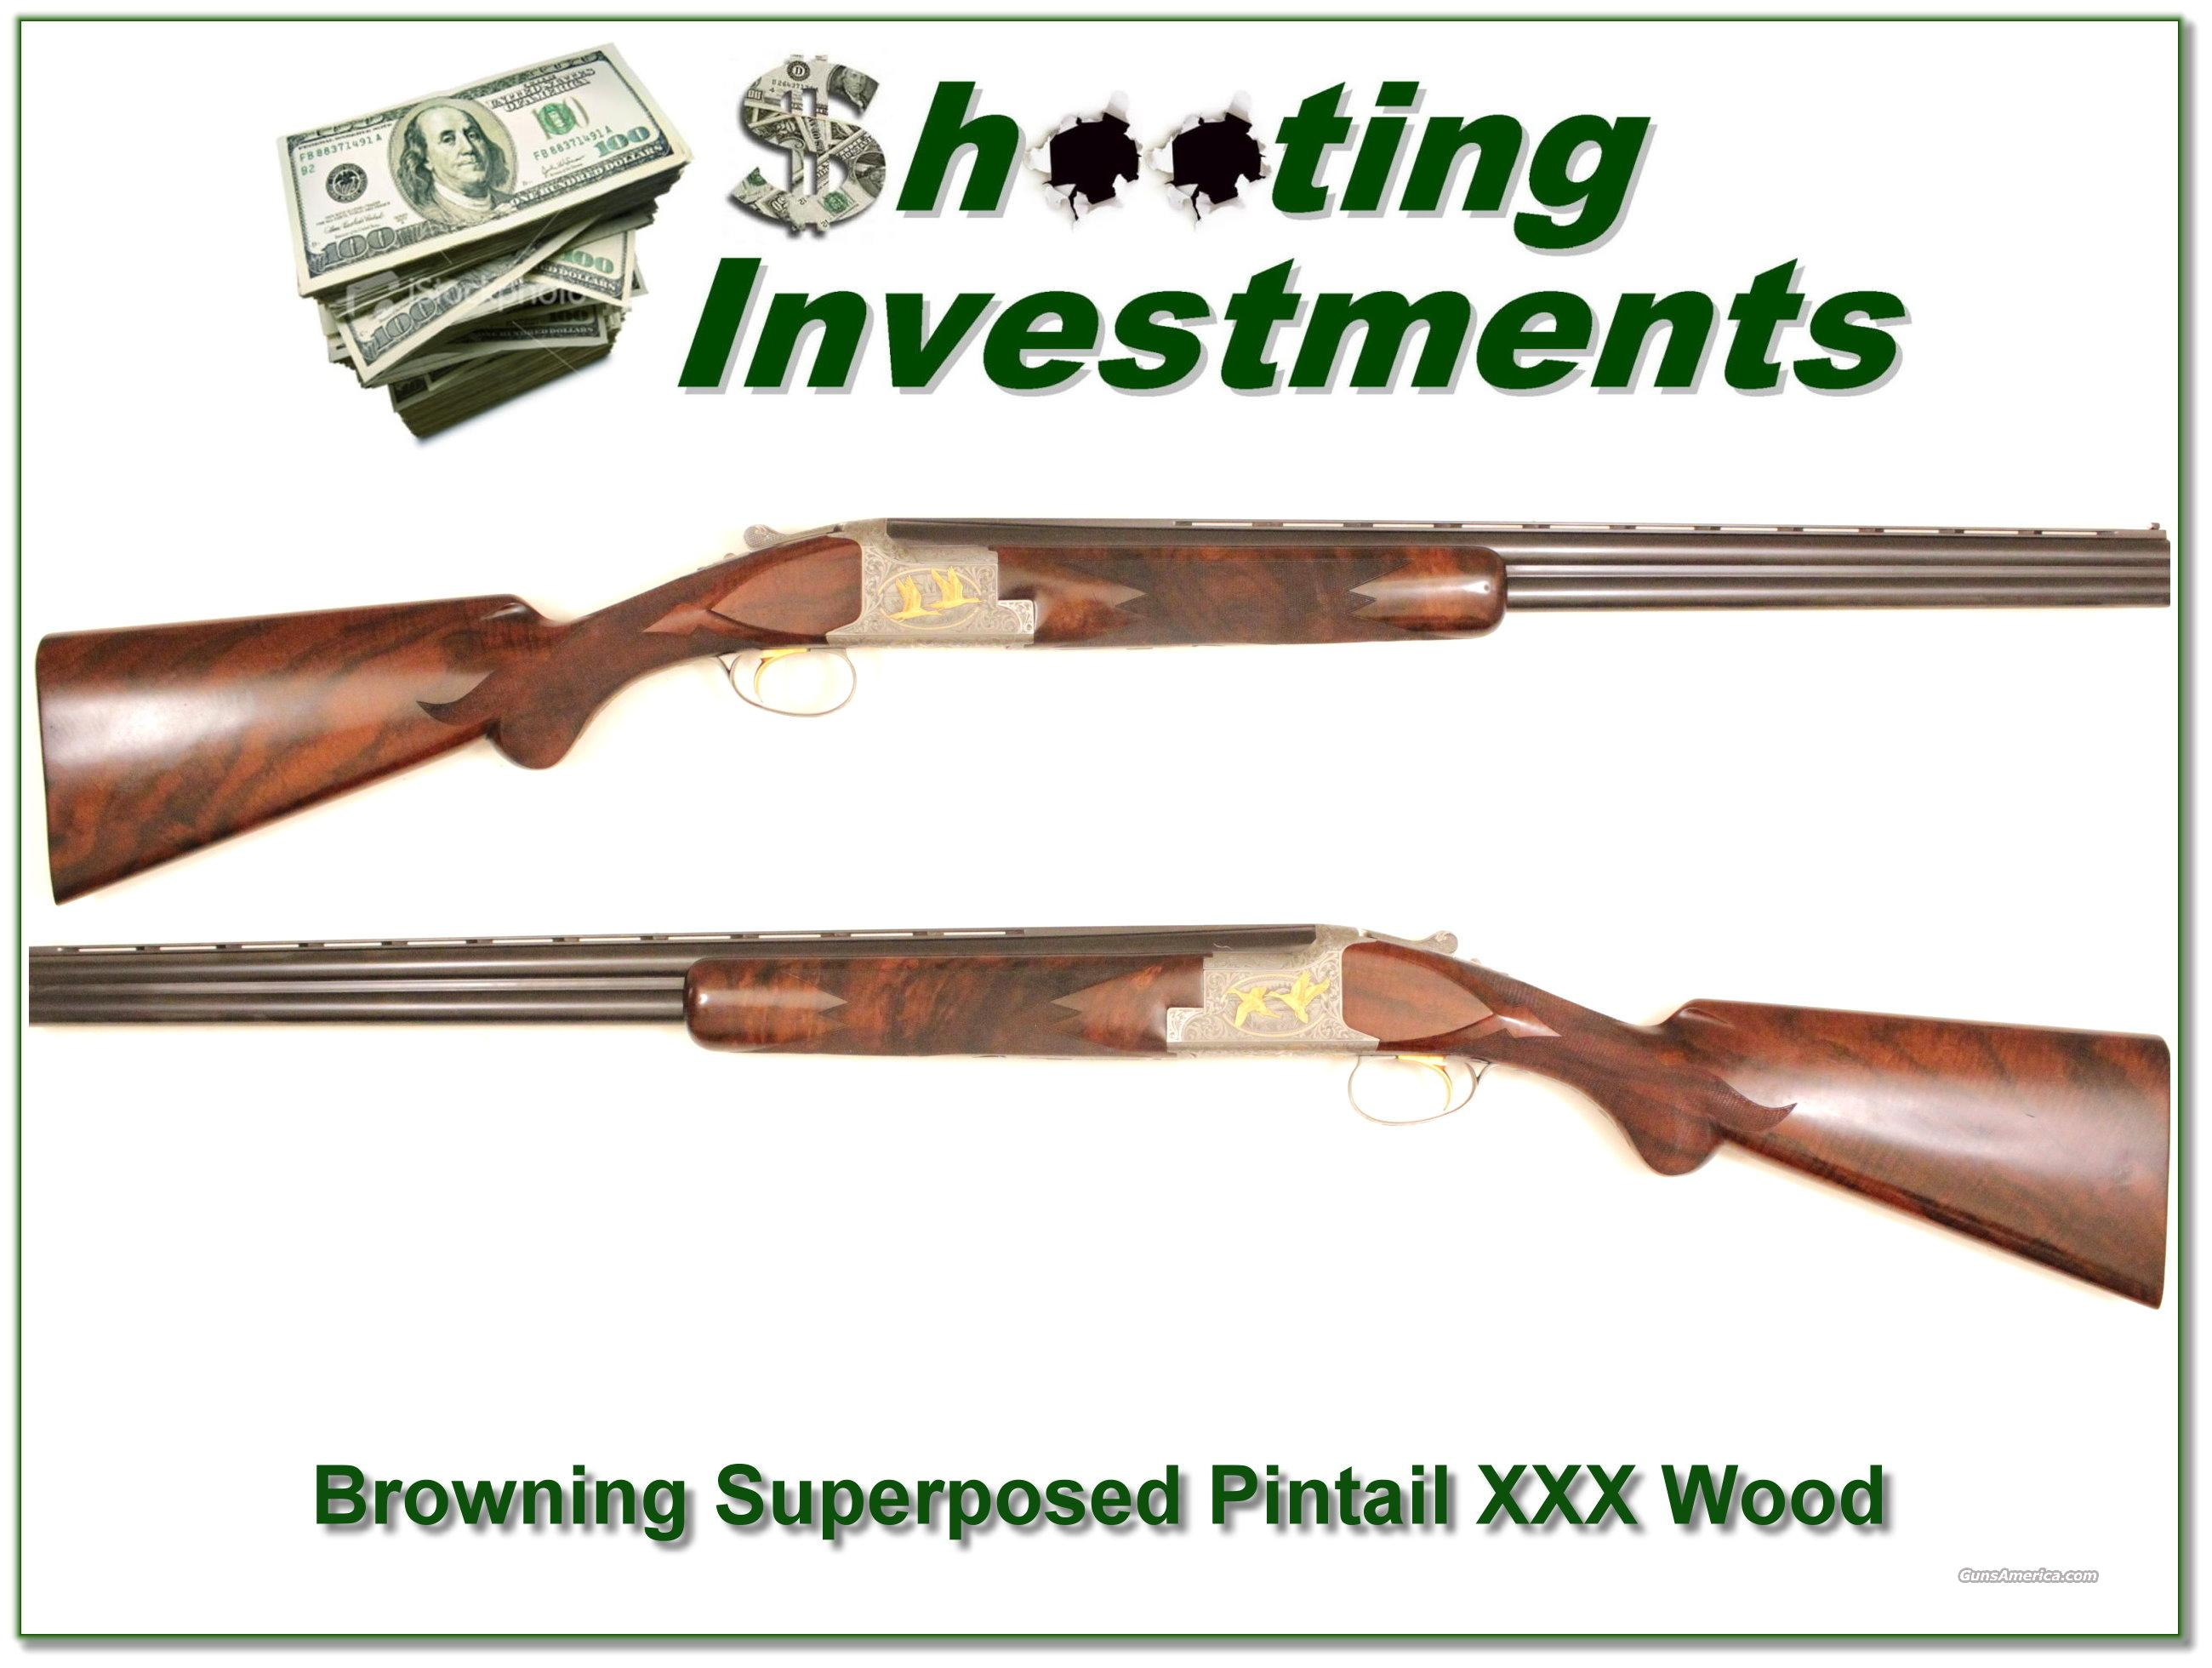 Browning Superposed Pintail Waterfowl 12 gauge  Guns > Shotguns > Browning Shotguns > Over Unders > Belgian Manufacture